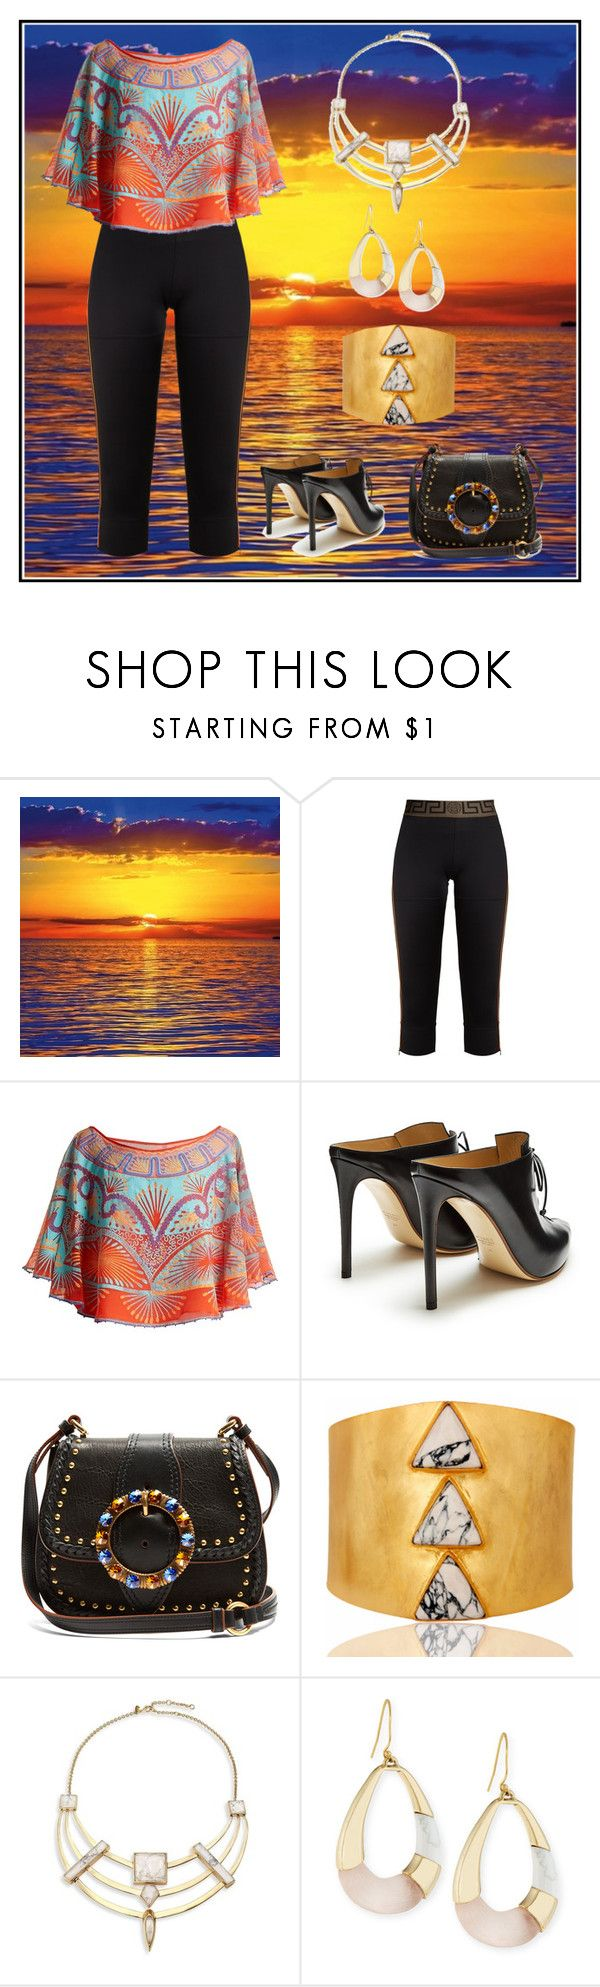 """Sunset"" by karen-galves ❤ liked on Polyvore featuring Versace, Zandra Rhodes, Francesco Russo, Miu Miu, Carousel Jewels and Alexis Bittar"